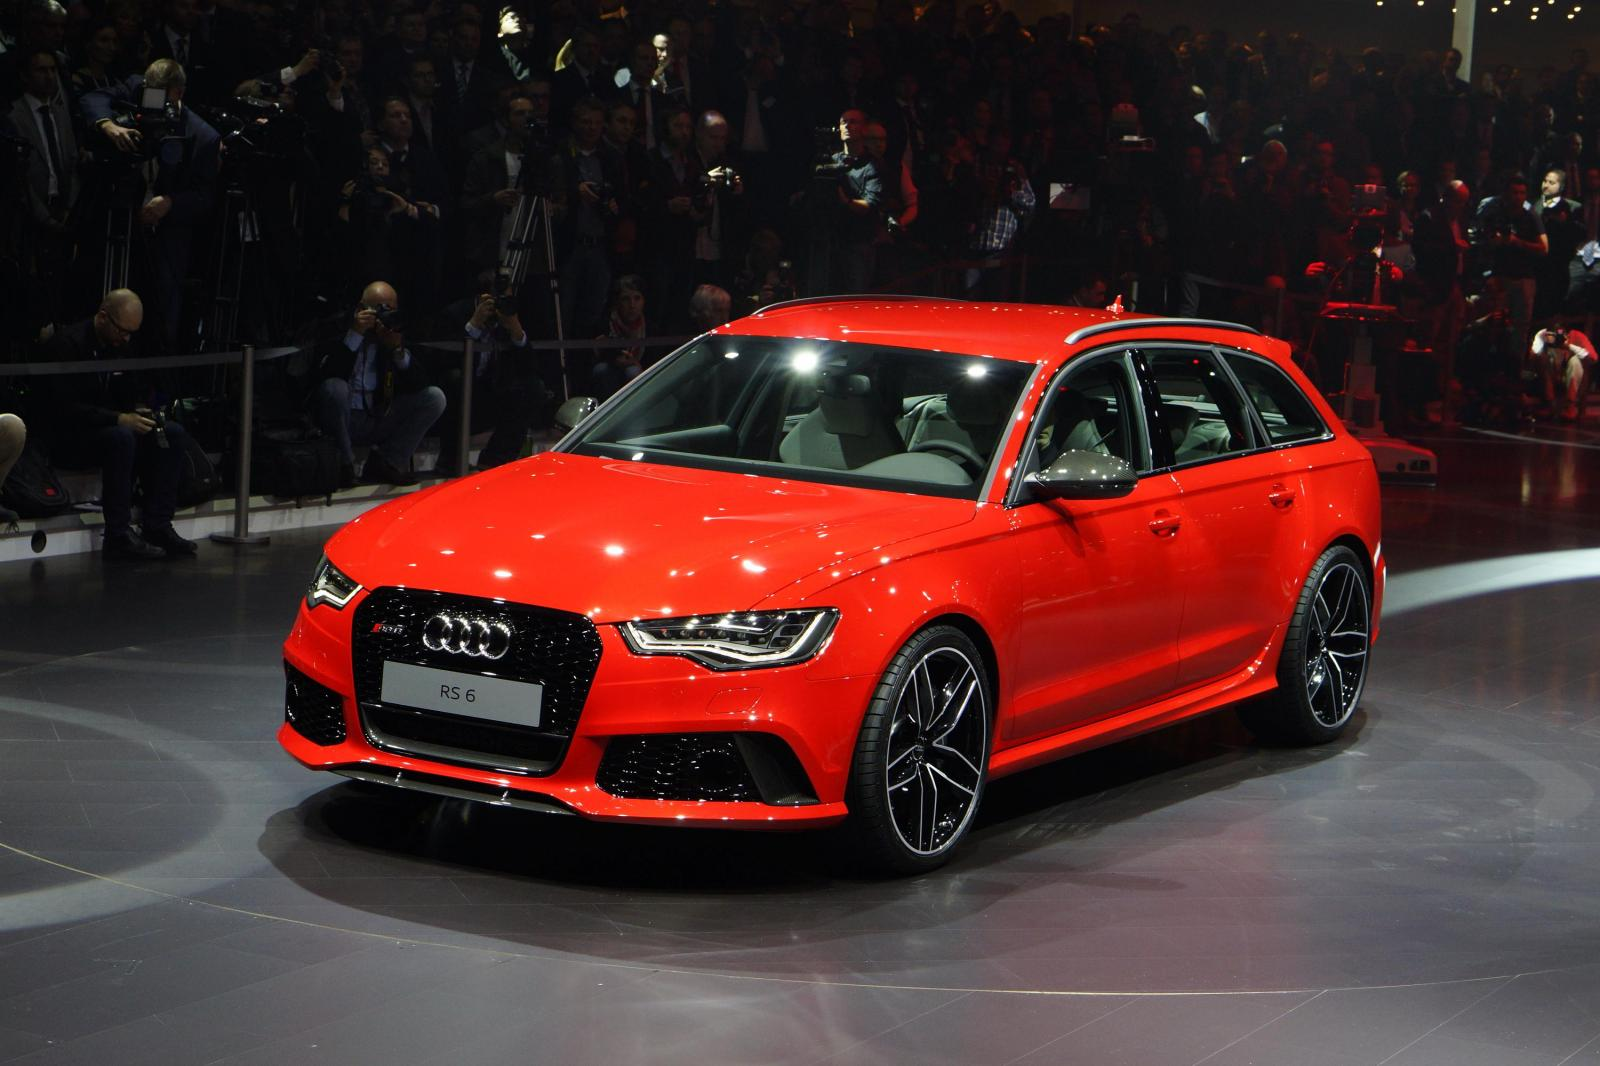 2014 Audi Rs6 Avant At Geneva Gallery Rs246 Com